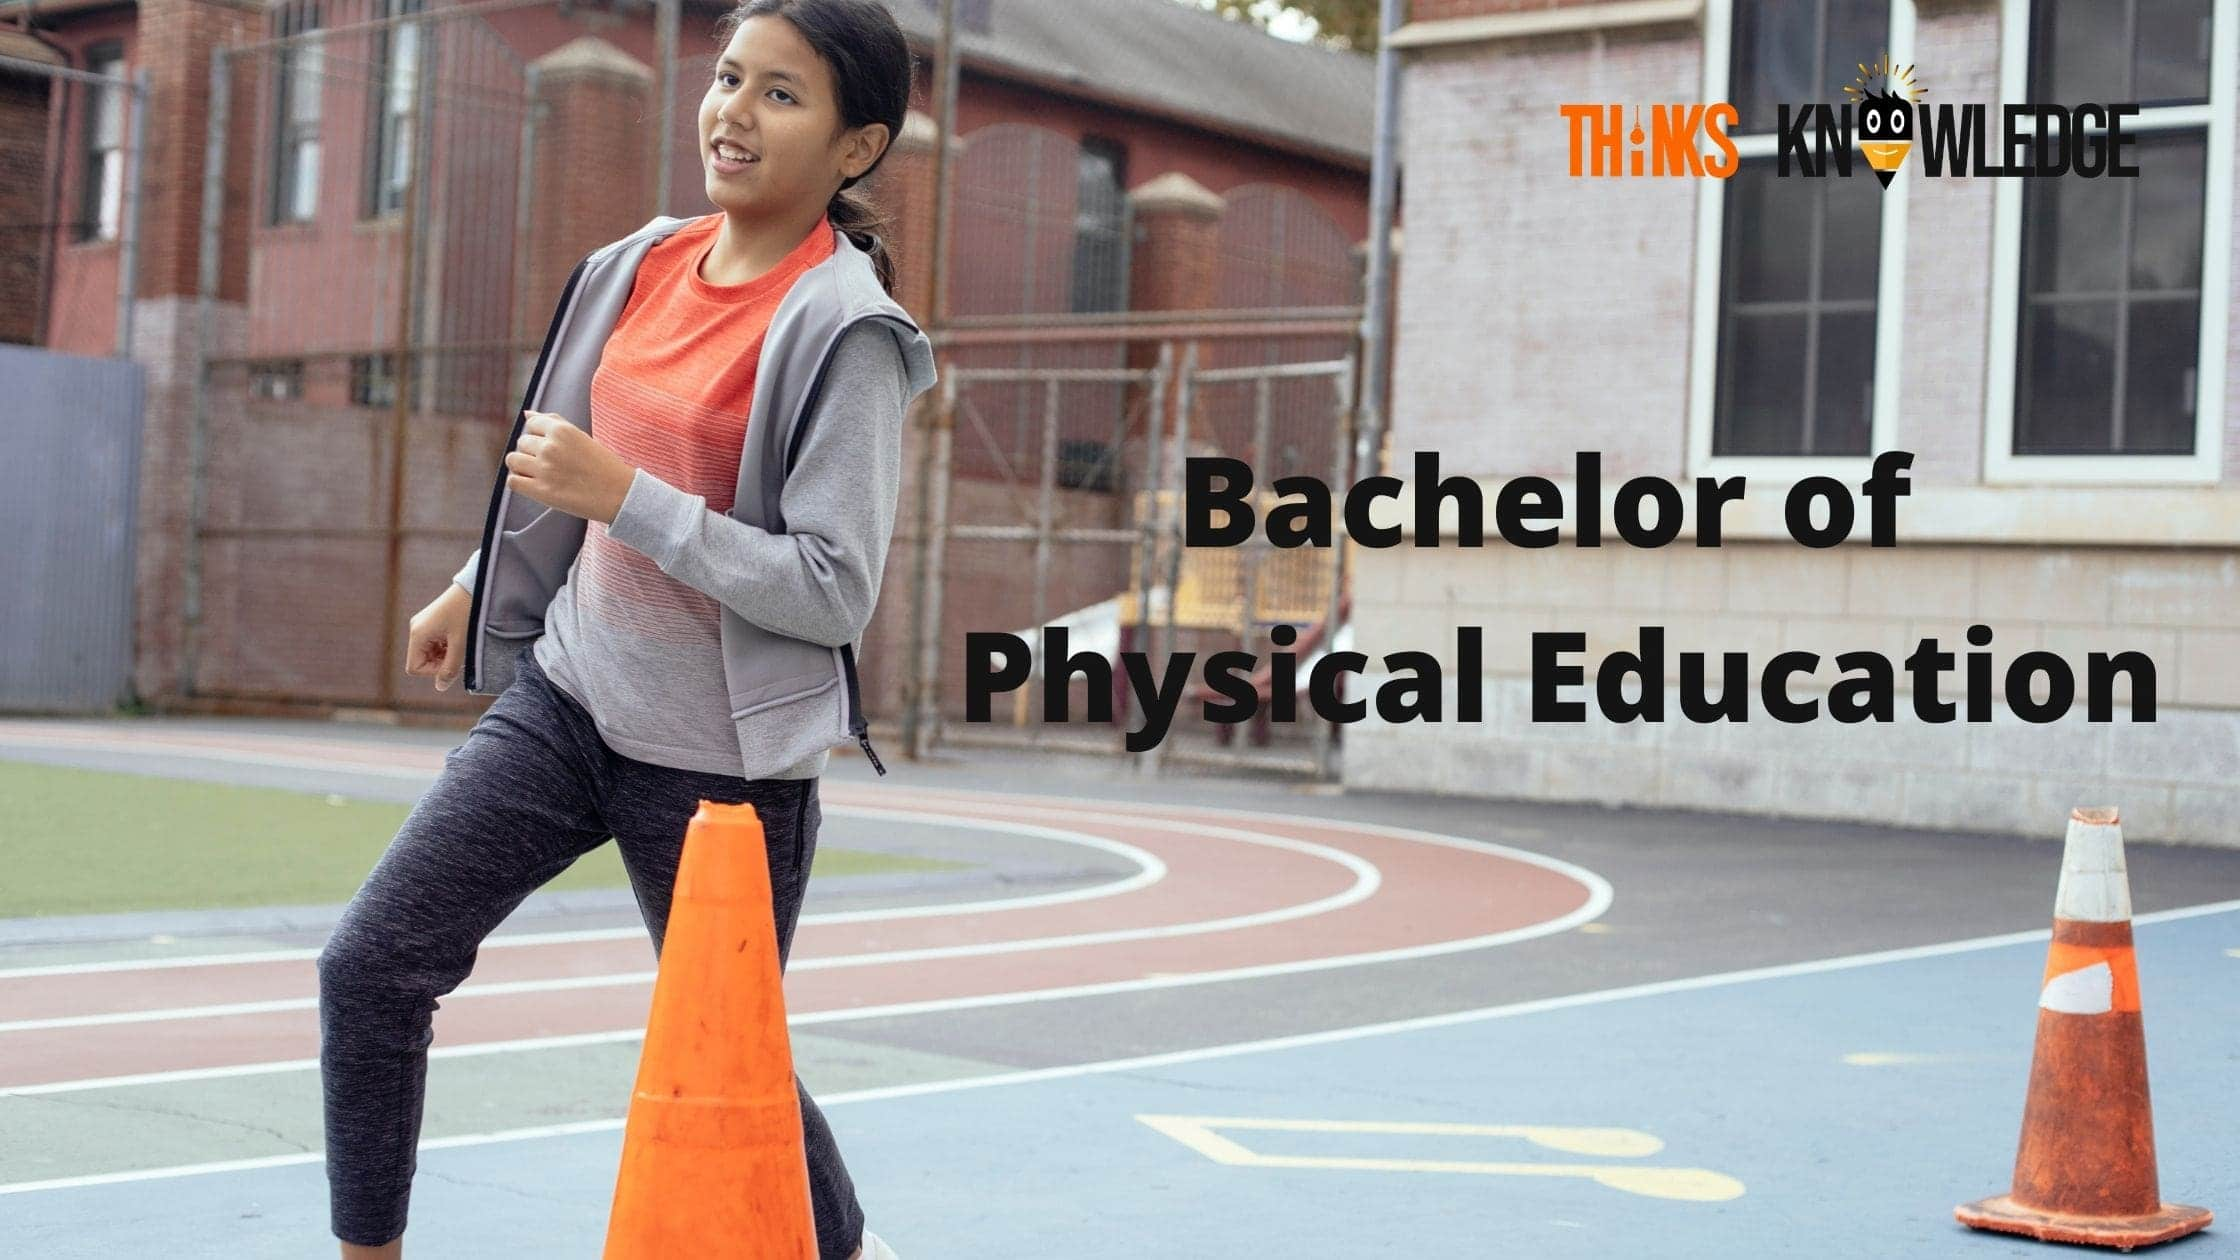 Bachelor of Physical Education